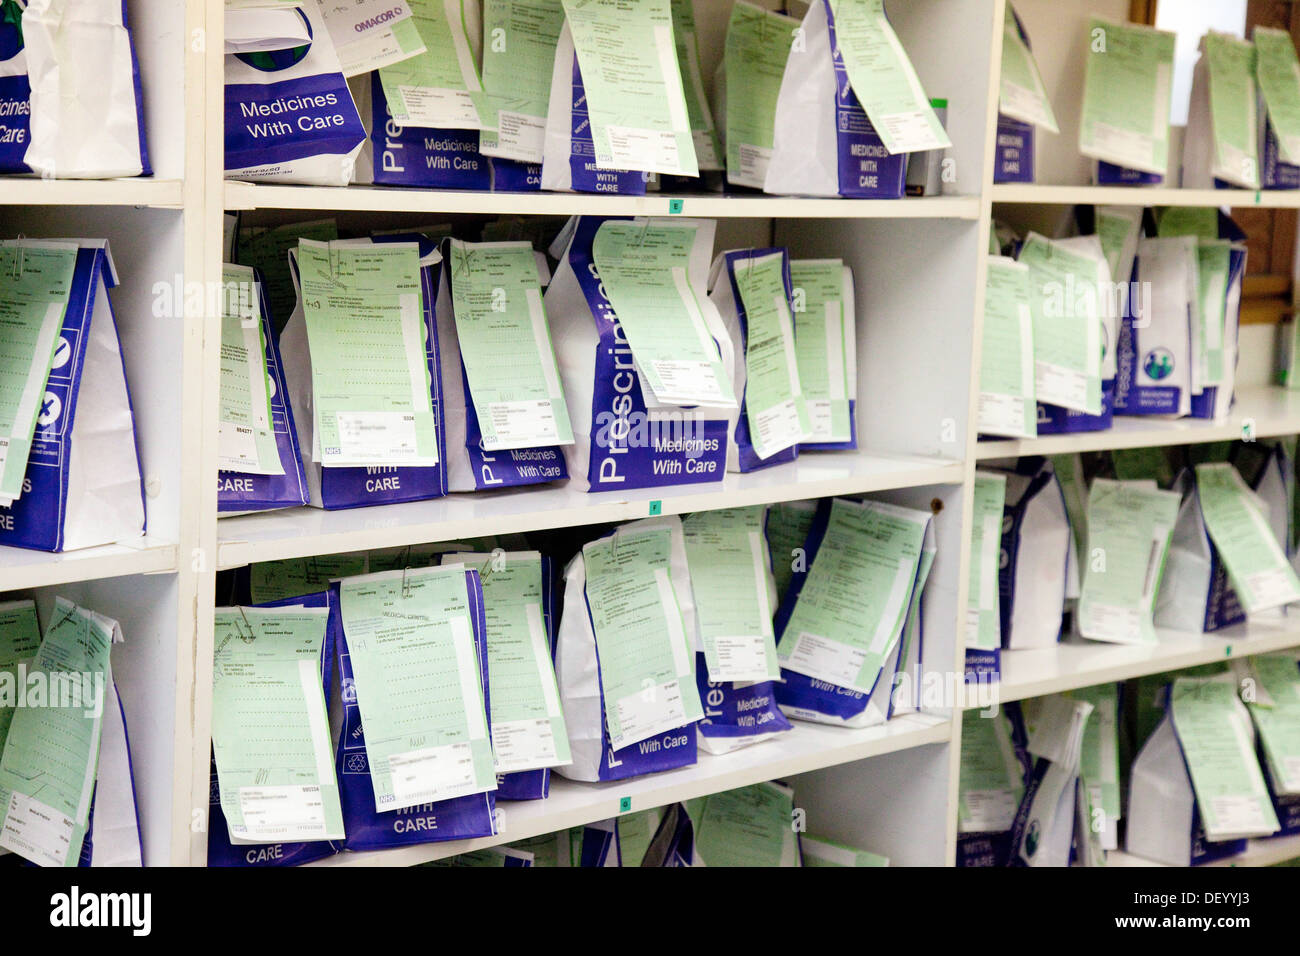 NHS Prescription medicines waiting to be collected on a chemist pharmacy shelves, Suffolk, England, UK - Stock Image